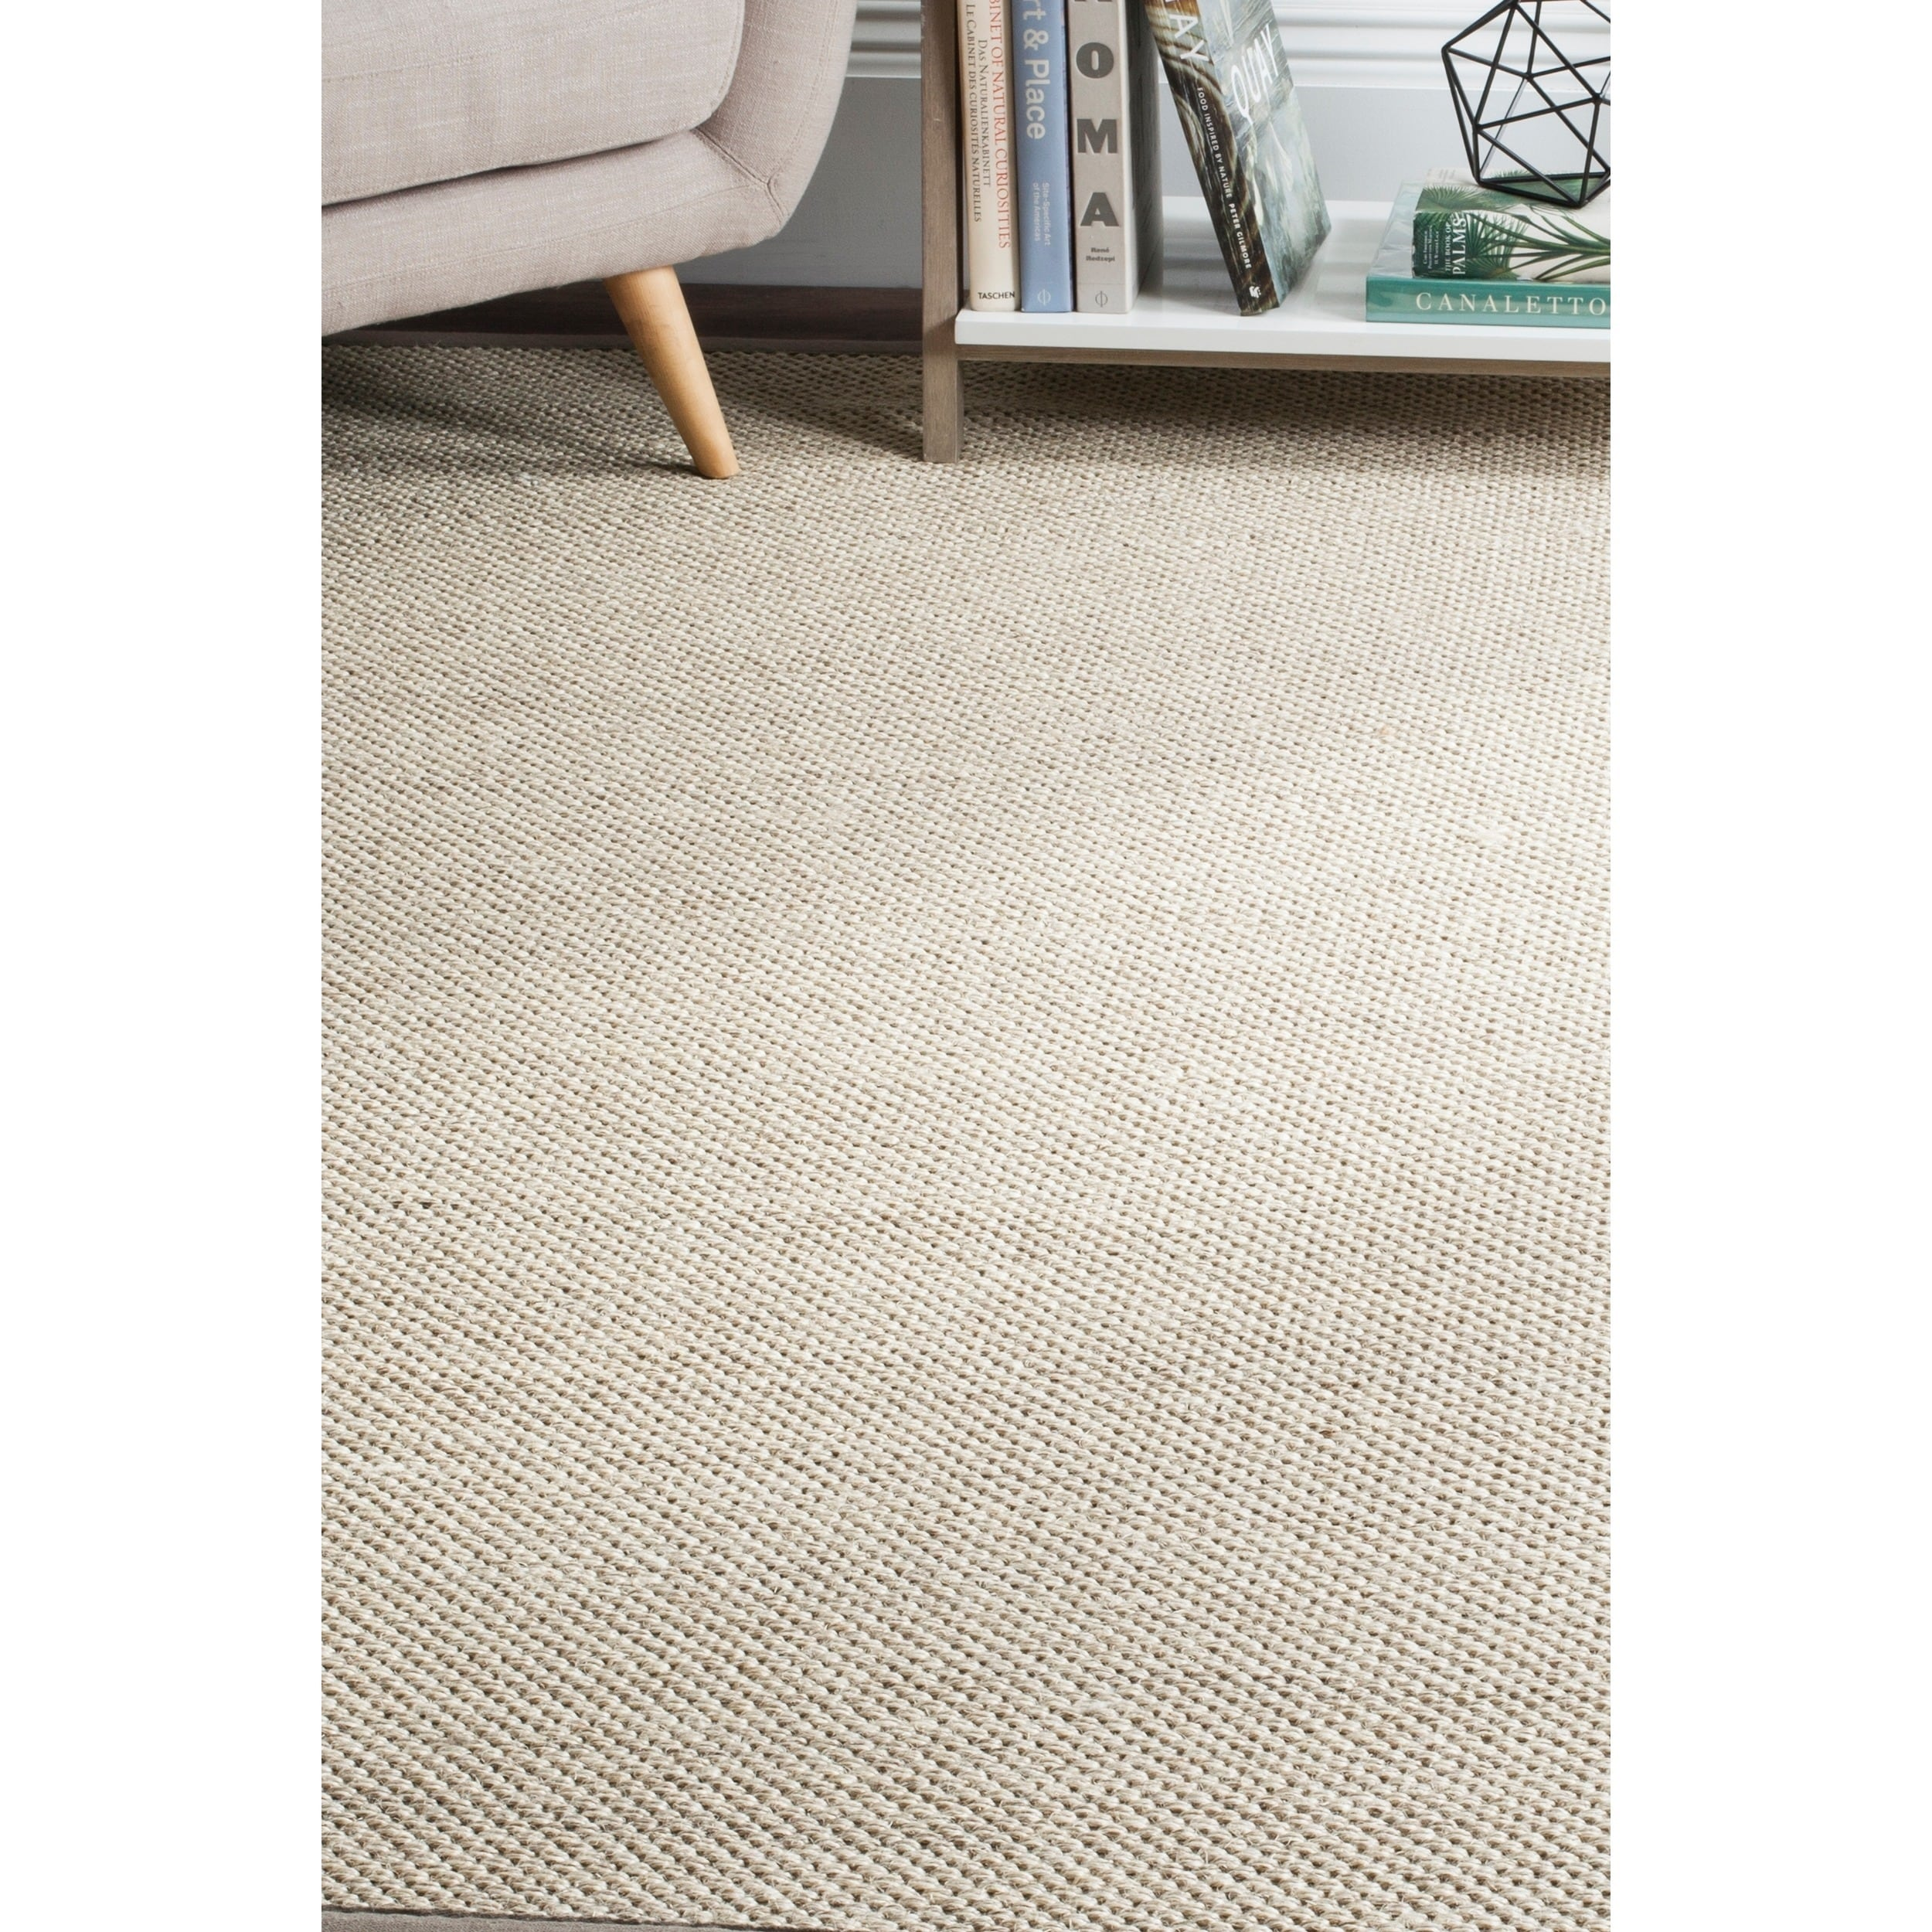 Safavieh Casual Natural Fiber Marble Khaki Sisal Area Rug 8 X 10 On Free Shipping Today Com 11041149